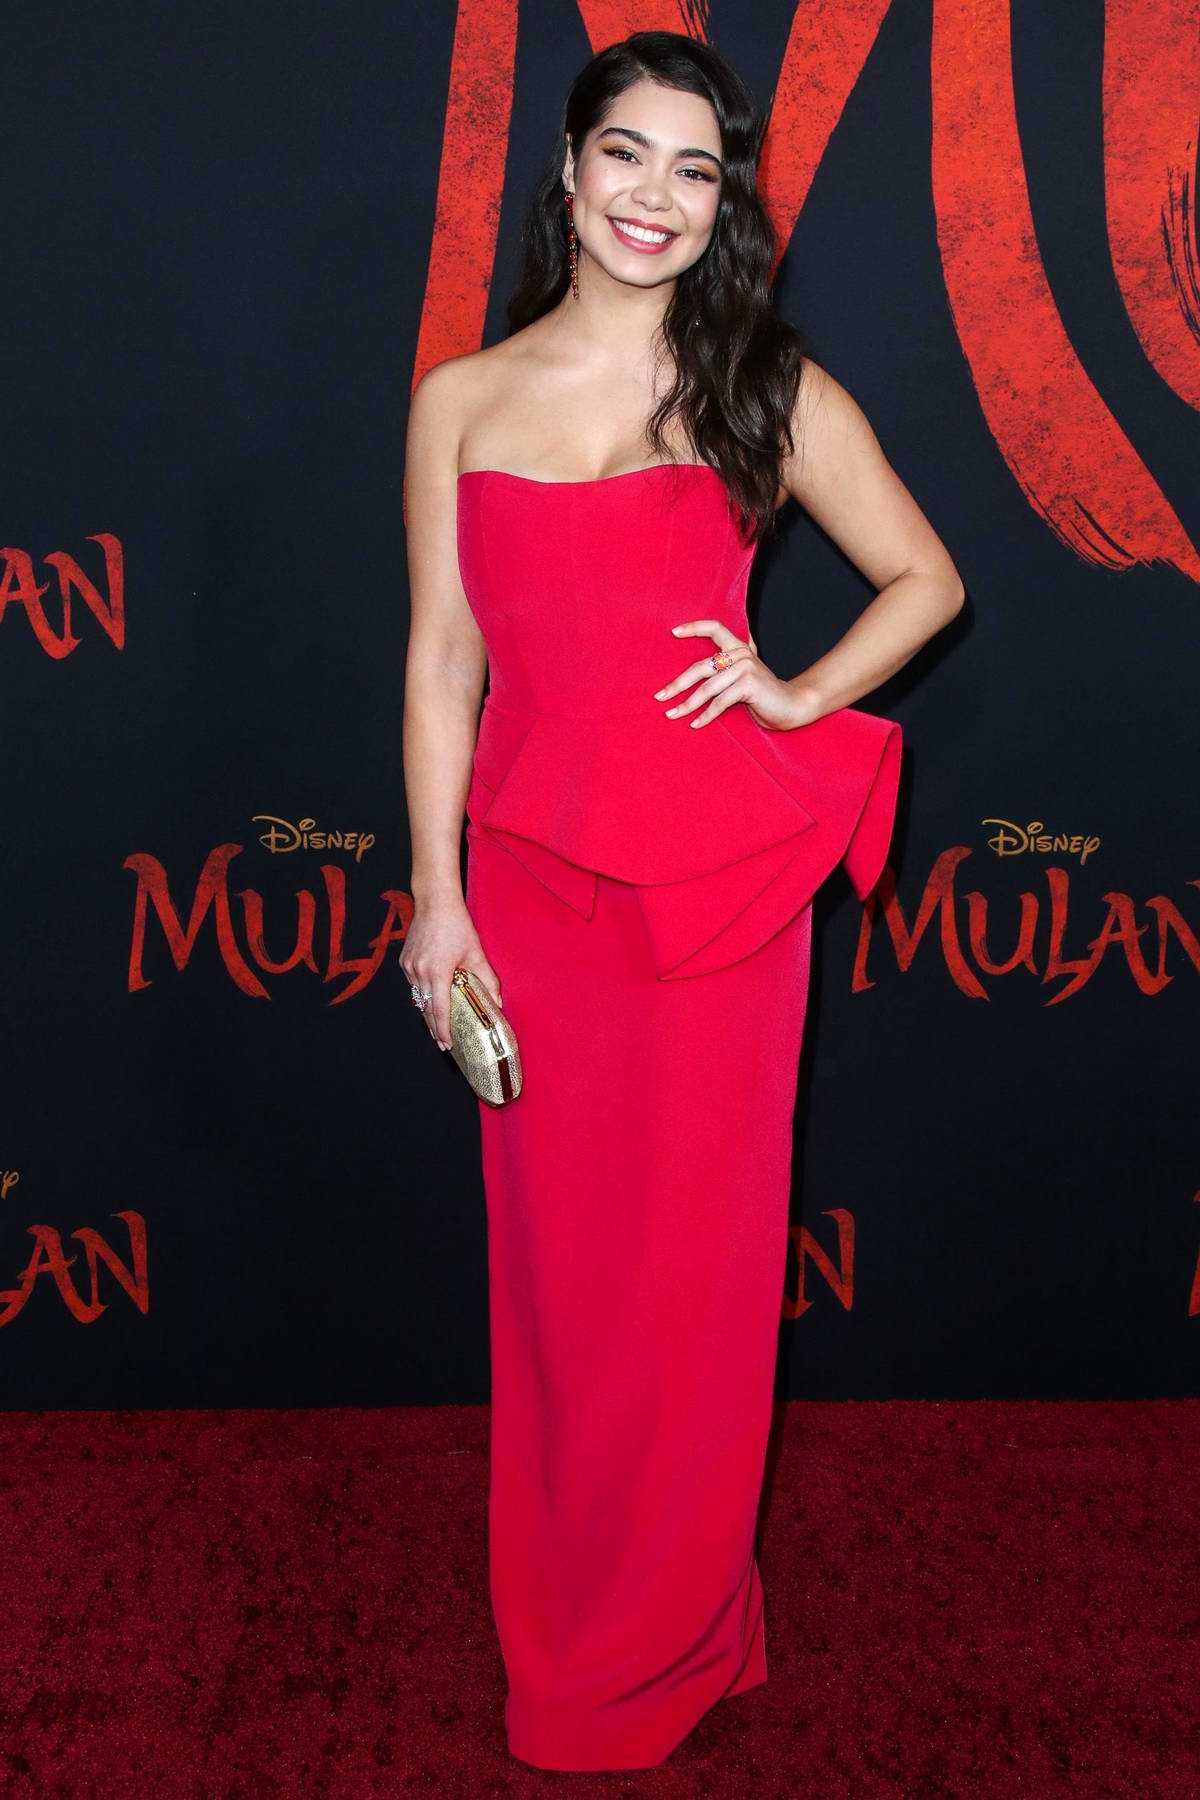 Auli'i Cravalho attends the Premiere of Disney's 'Mulan' at Dolby Theatre in Los Angeles